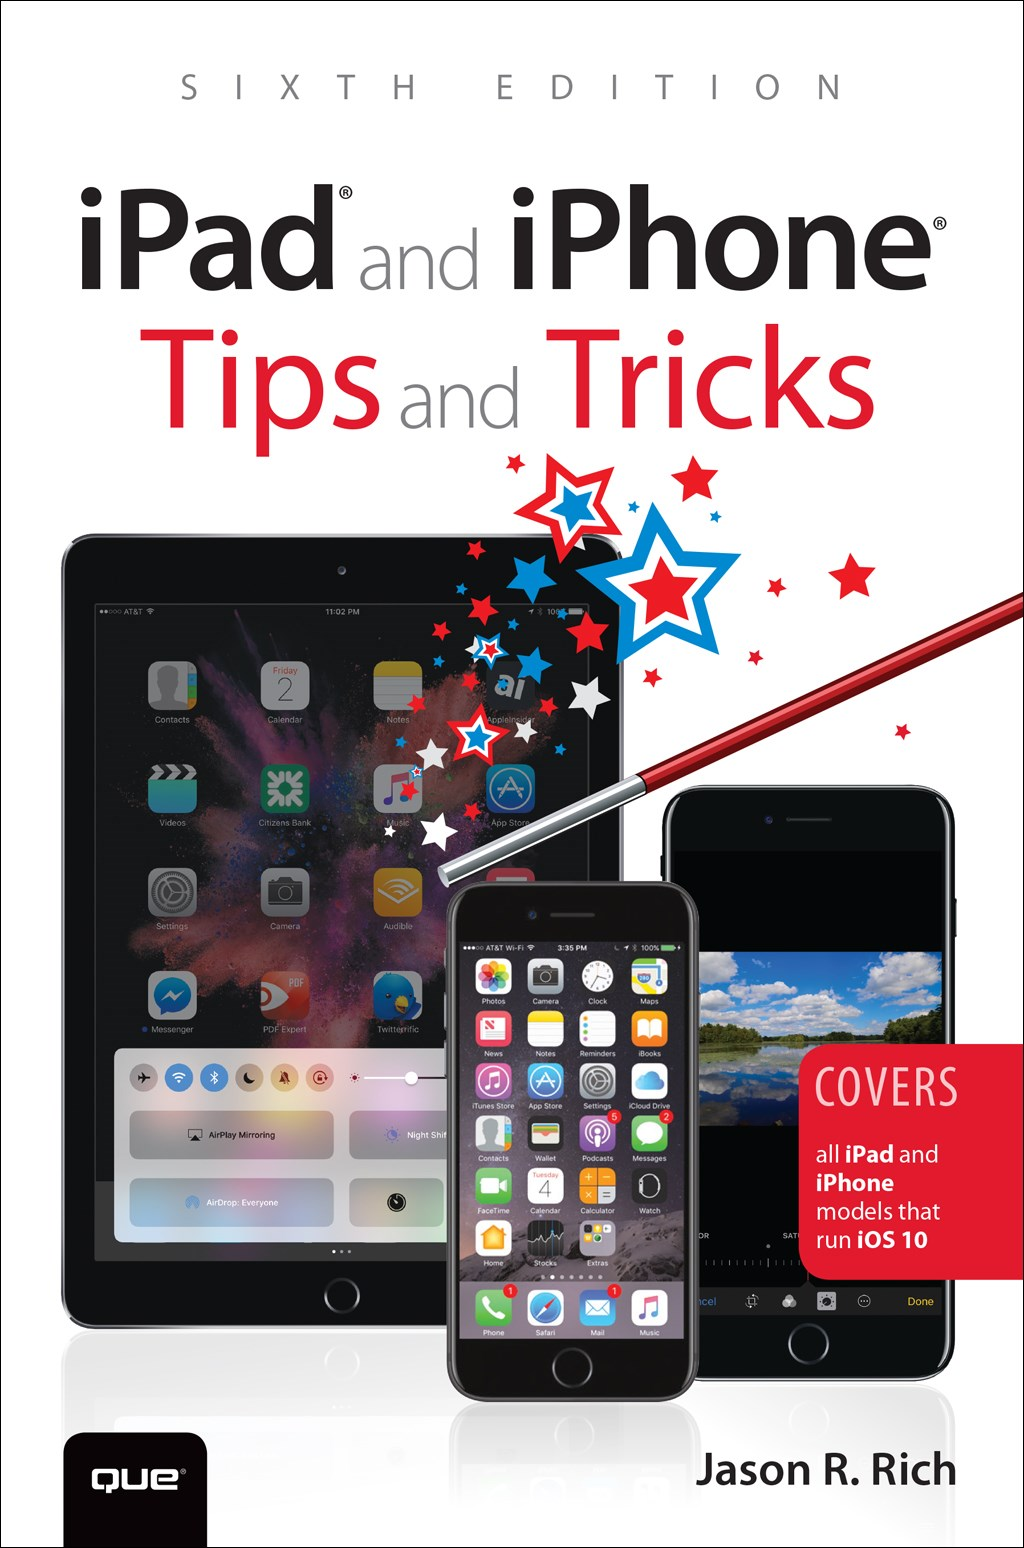 iPad and iPhone Tips and Tricks: Covers all iPad and iPhone models that run iOS 10, 6th Edition